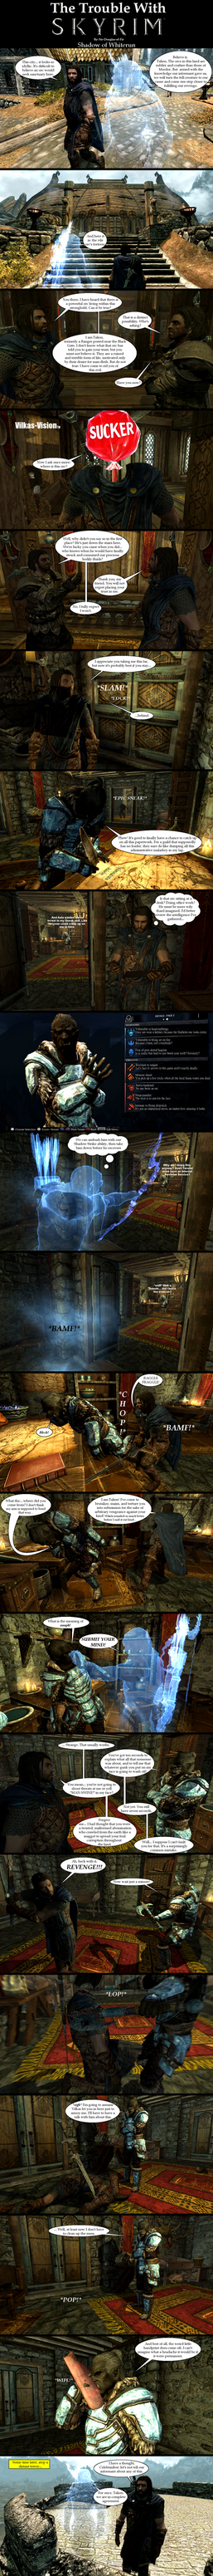 The Trouble with Skyrim: Shadow of Whiterun by Sir-Douglas